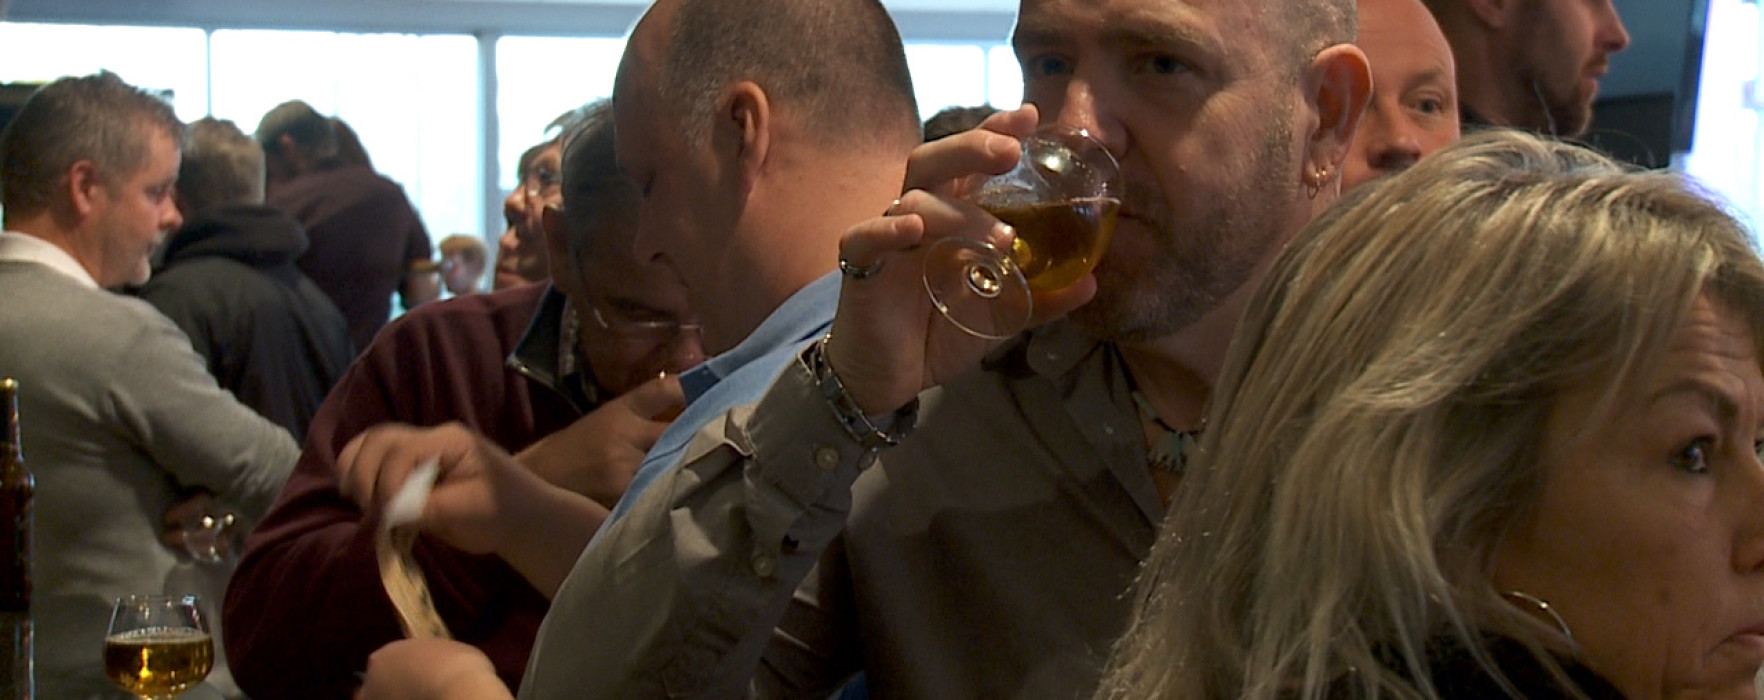 Glimt – Carlstad beer and whisky festival